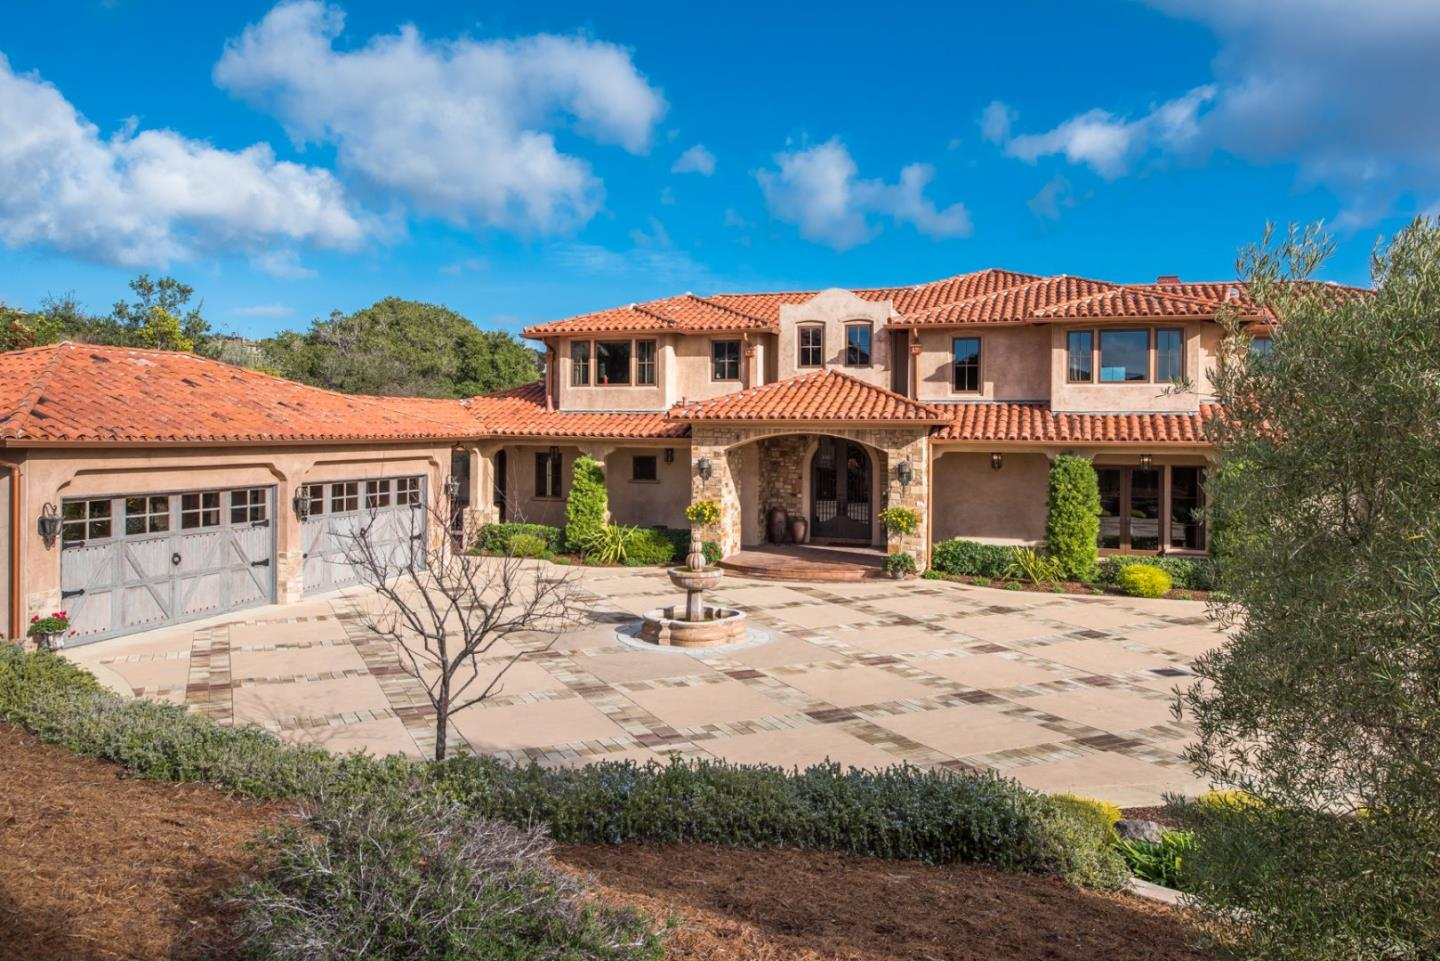 Property for sale at 117 Via Del Milagro, Monterey,  CA 93940